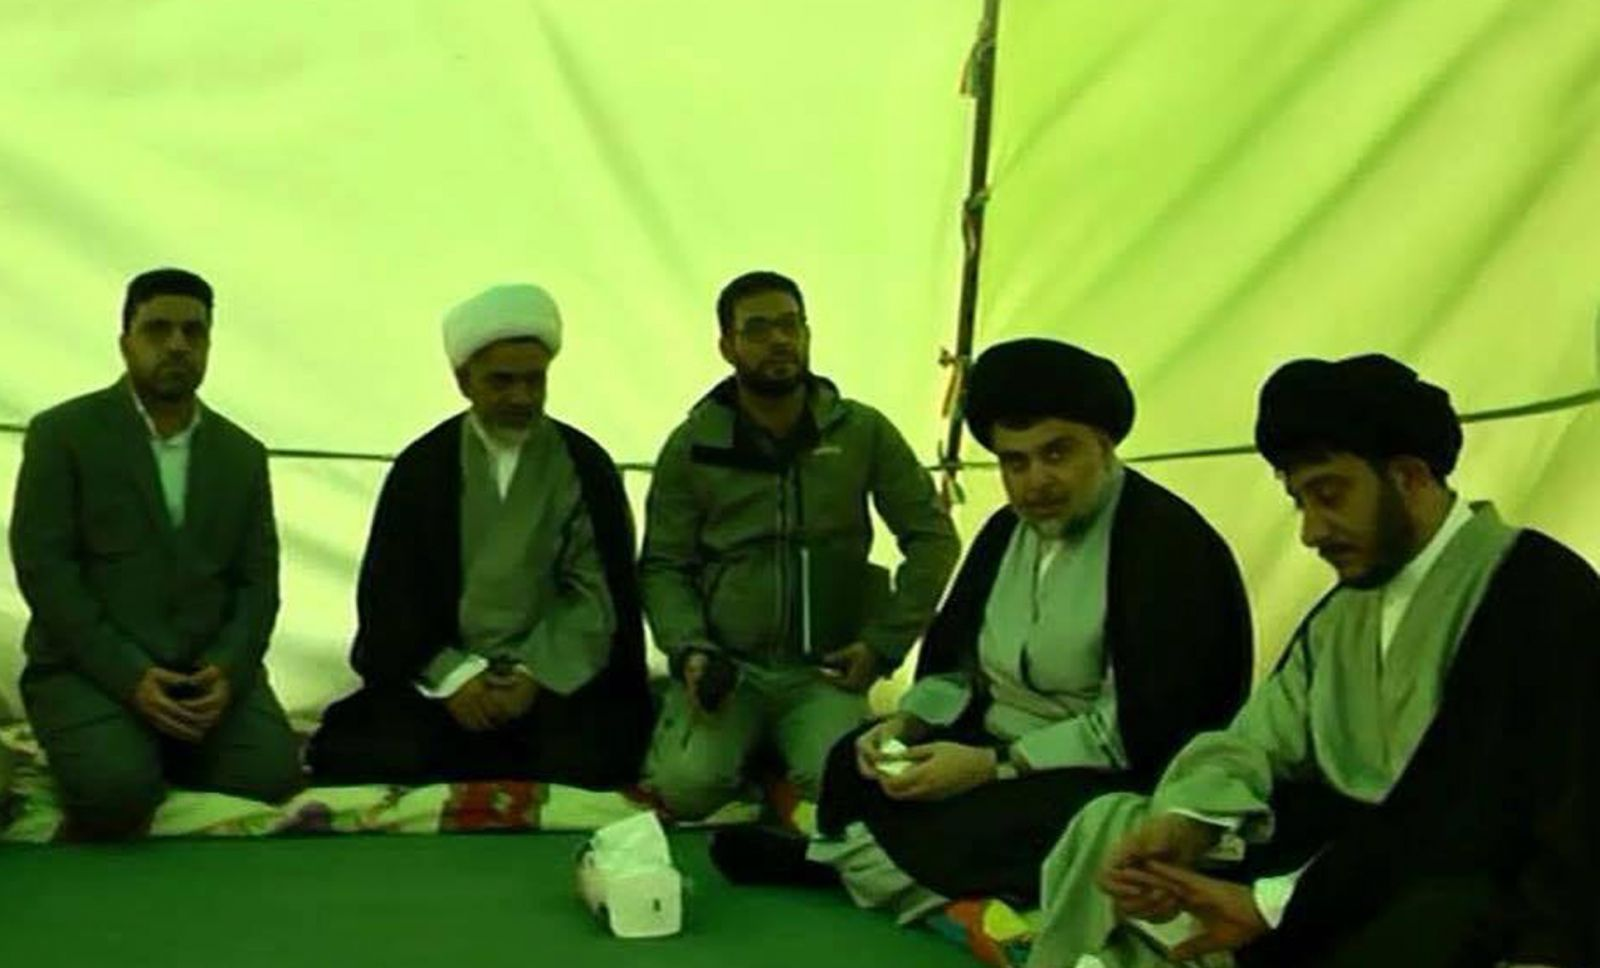 Muqtada al-Sadr (second from the right)